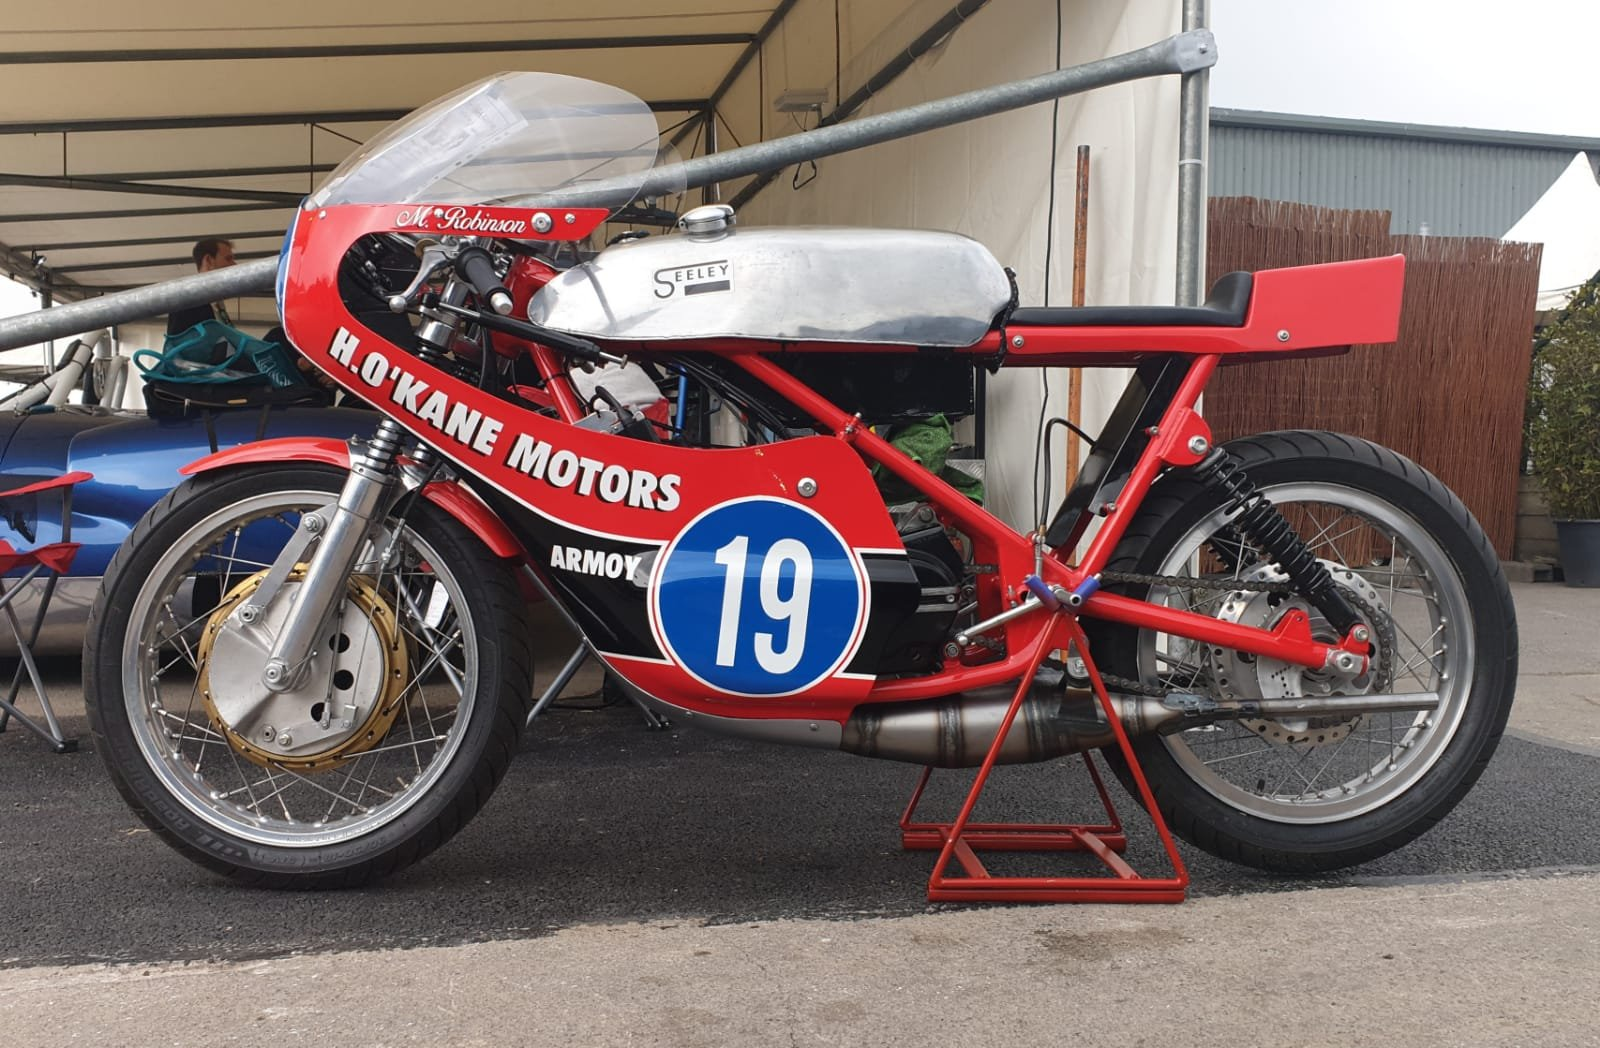 1971 Yamaha YAMSEL 350cc Road Race Classic For Sale (picture 2 of 6)